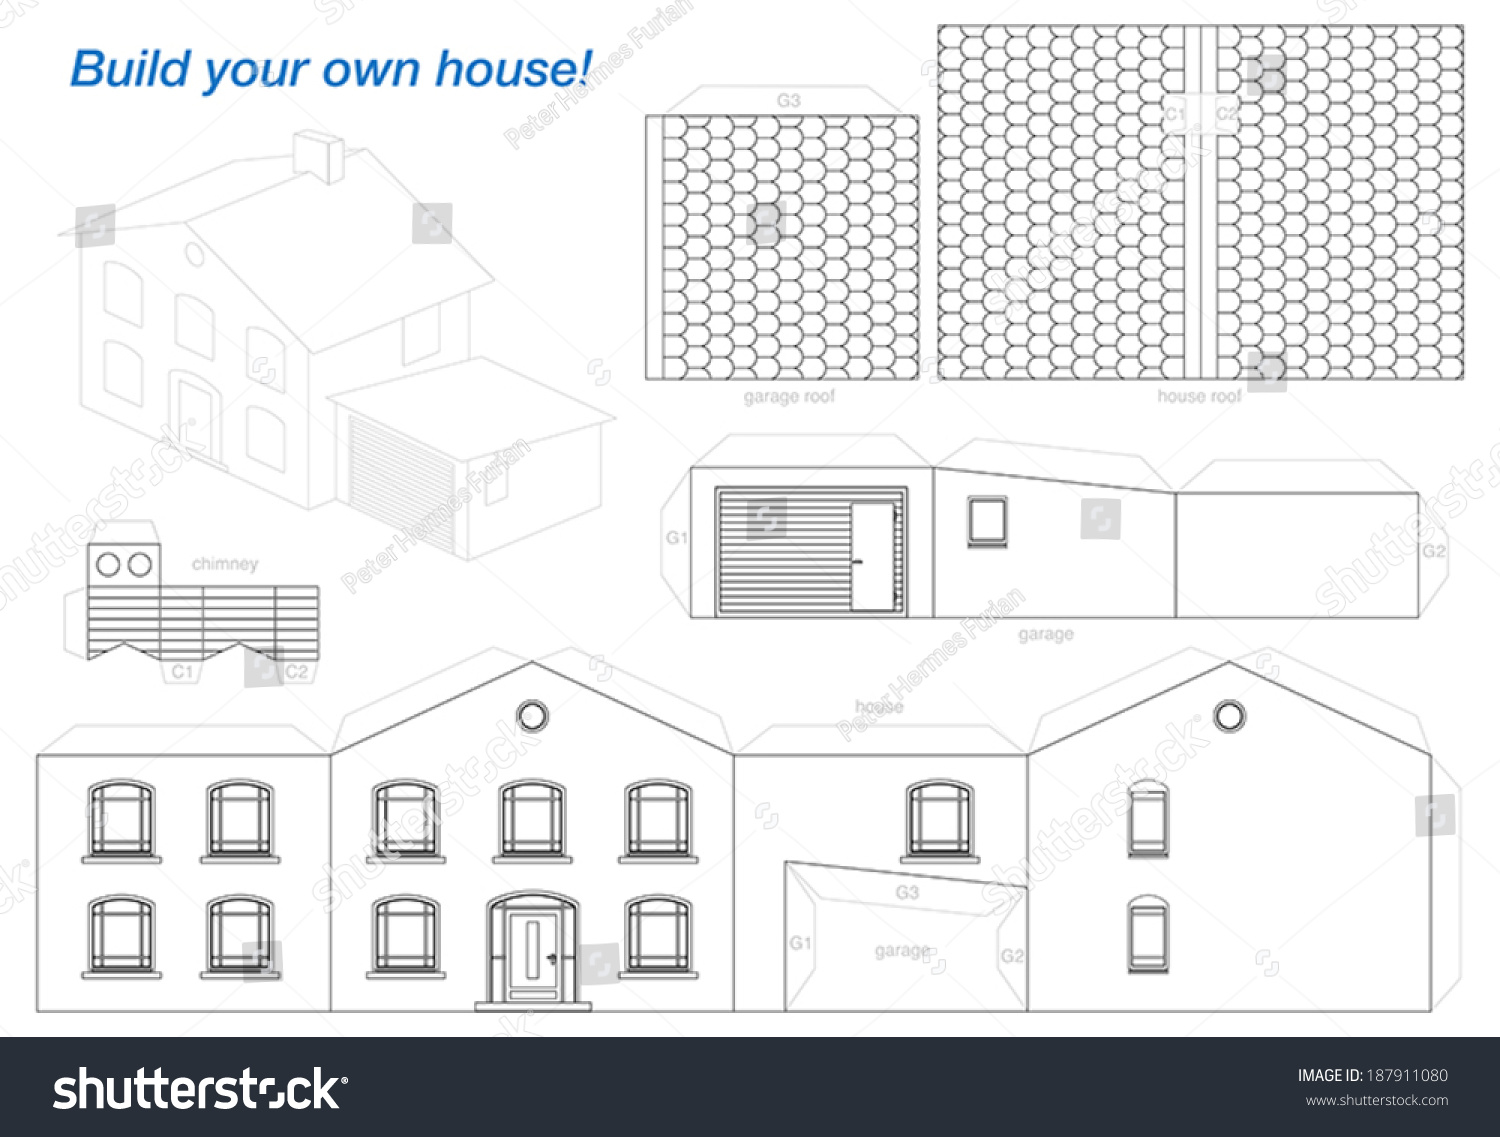 Marvelous Paper Model Of A House With Garage   Easy To Make   Print It On Heavy